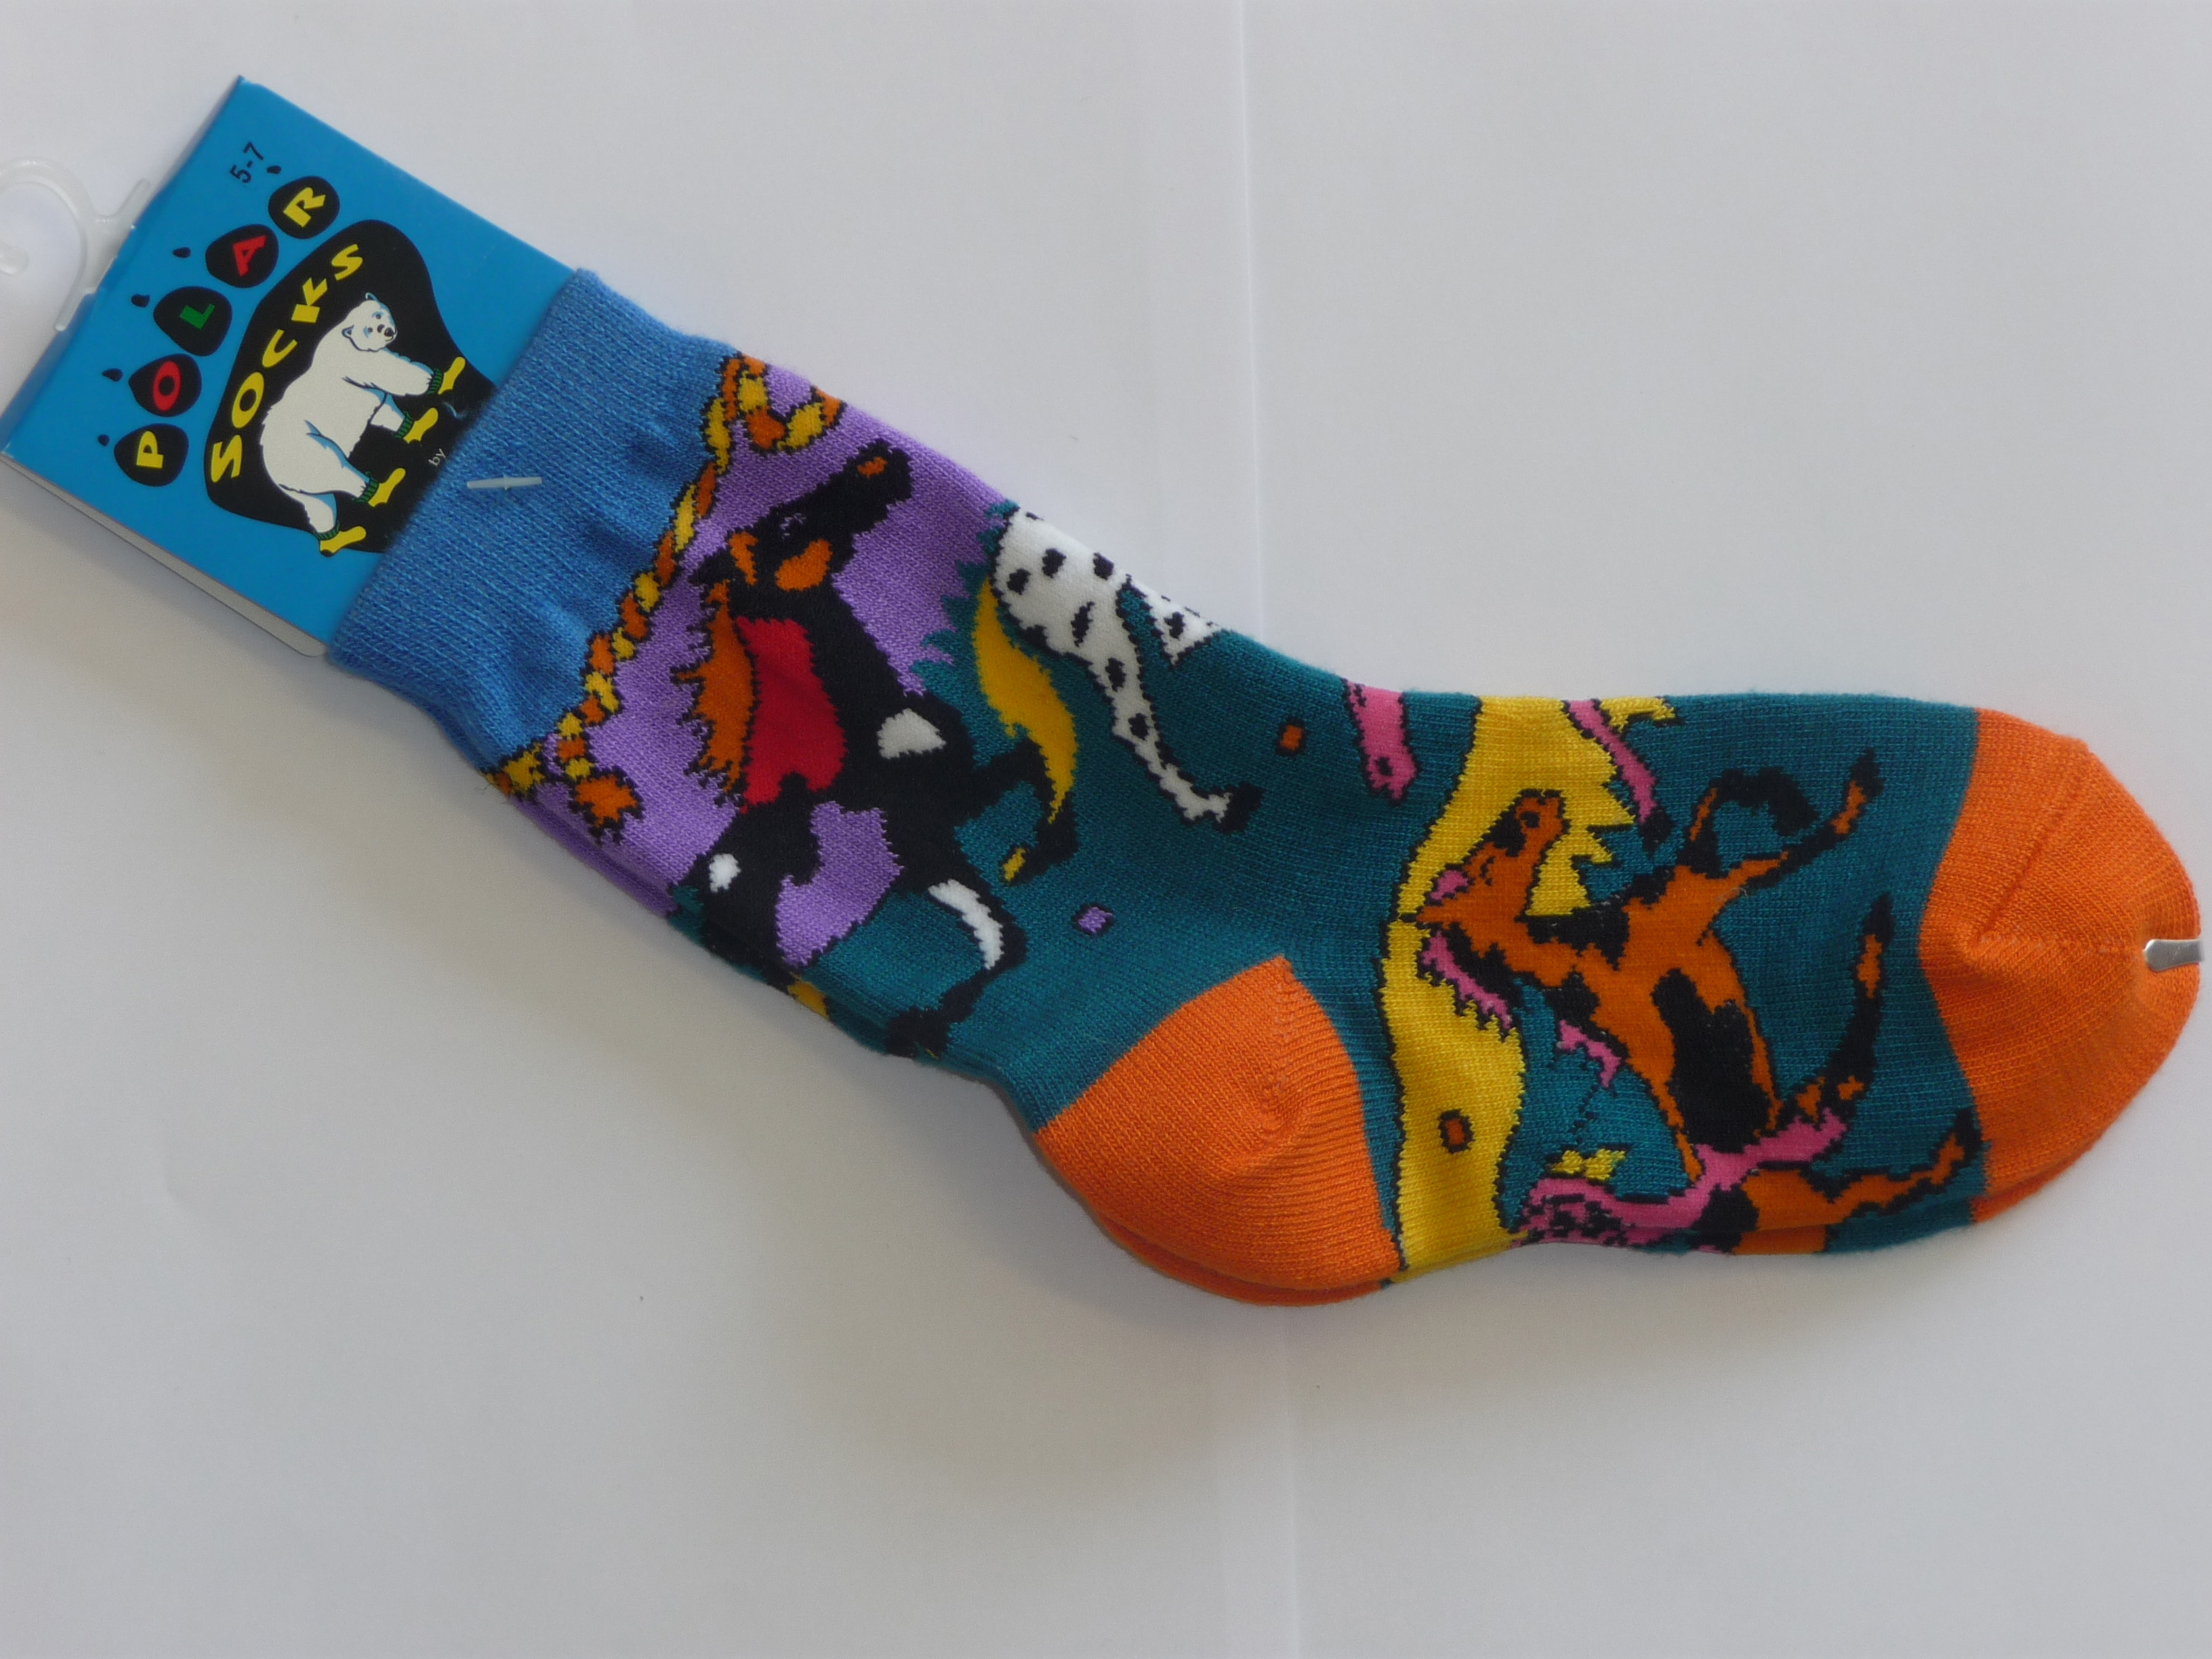 Ploar Childrens Socks